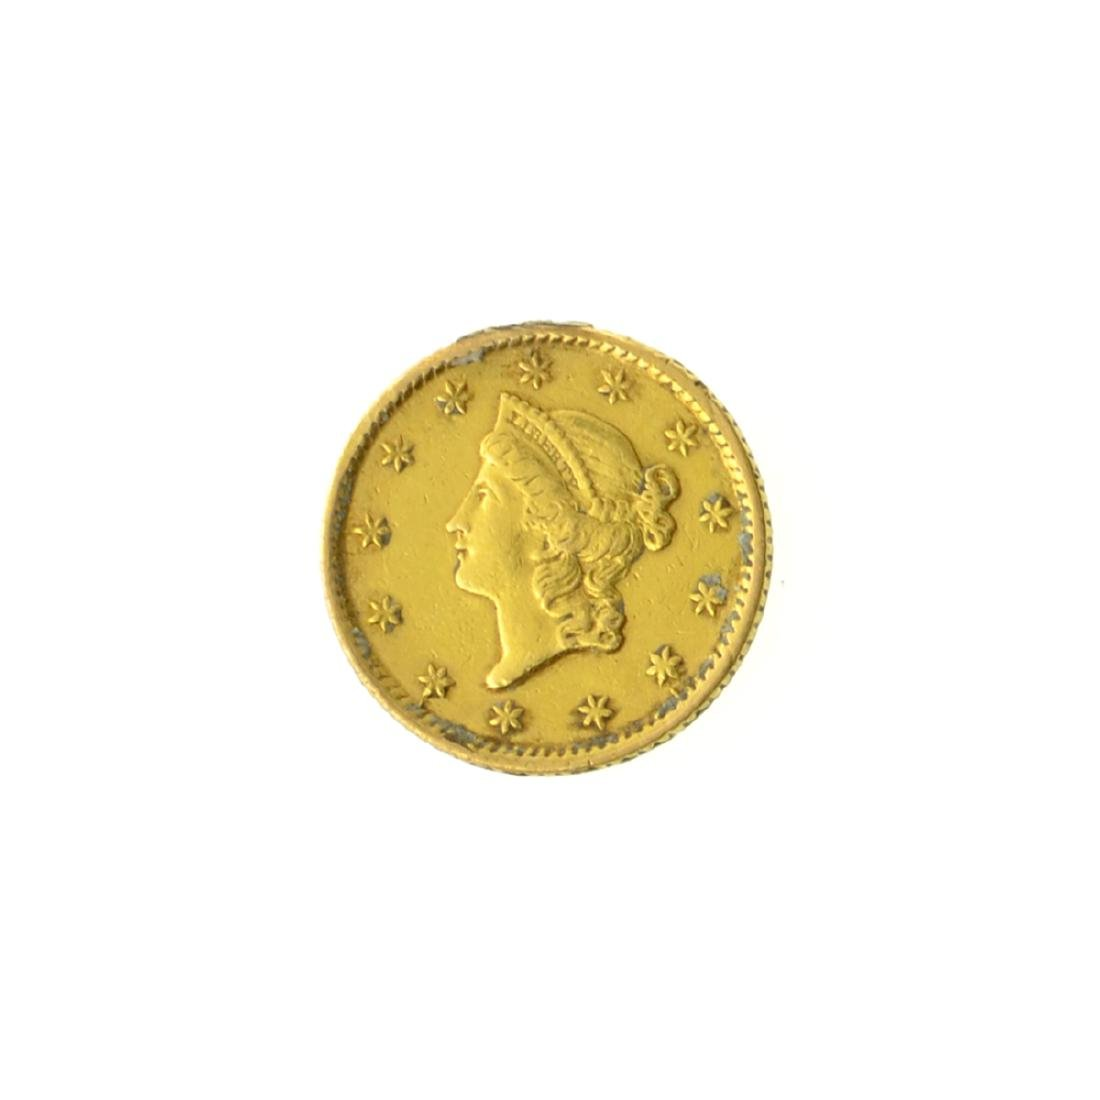 *1854 $1 U.S. Liberty Head Gold Coin (JG-MRT)